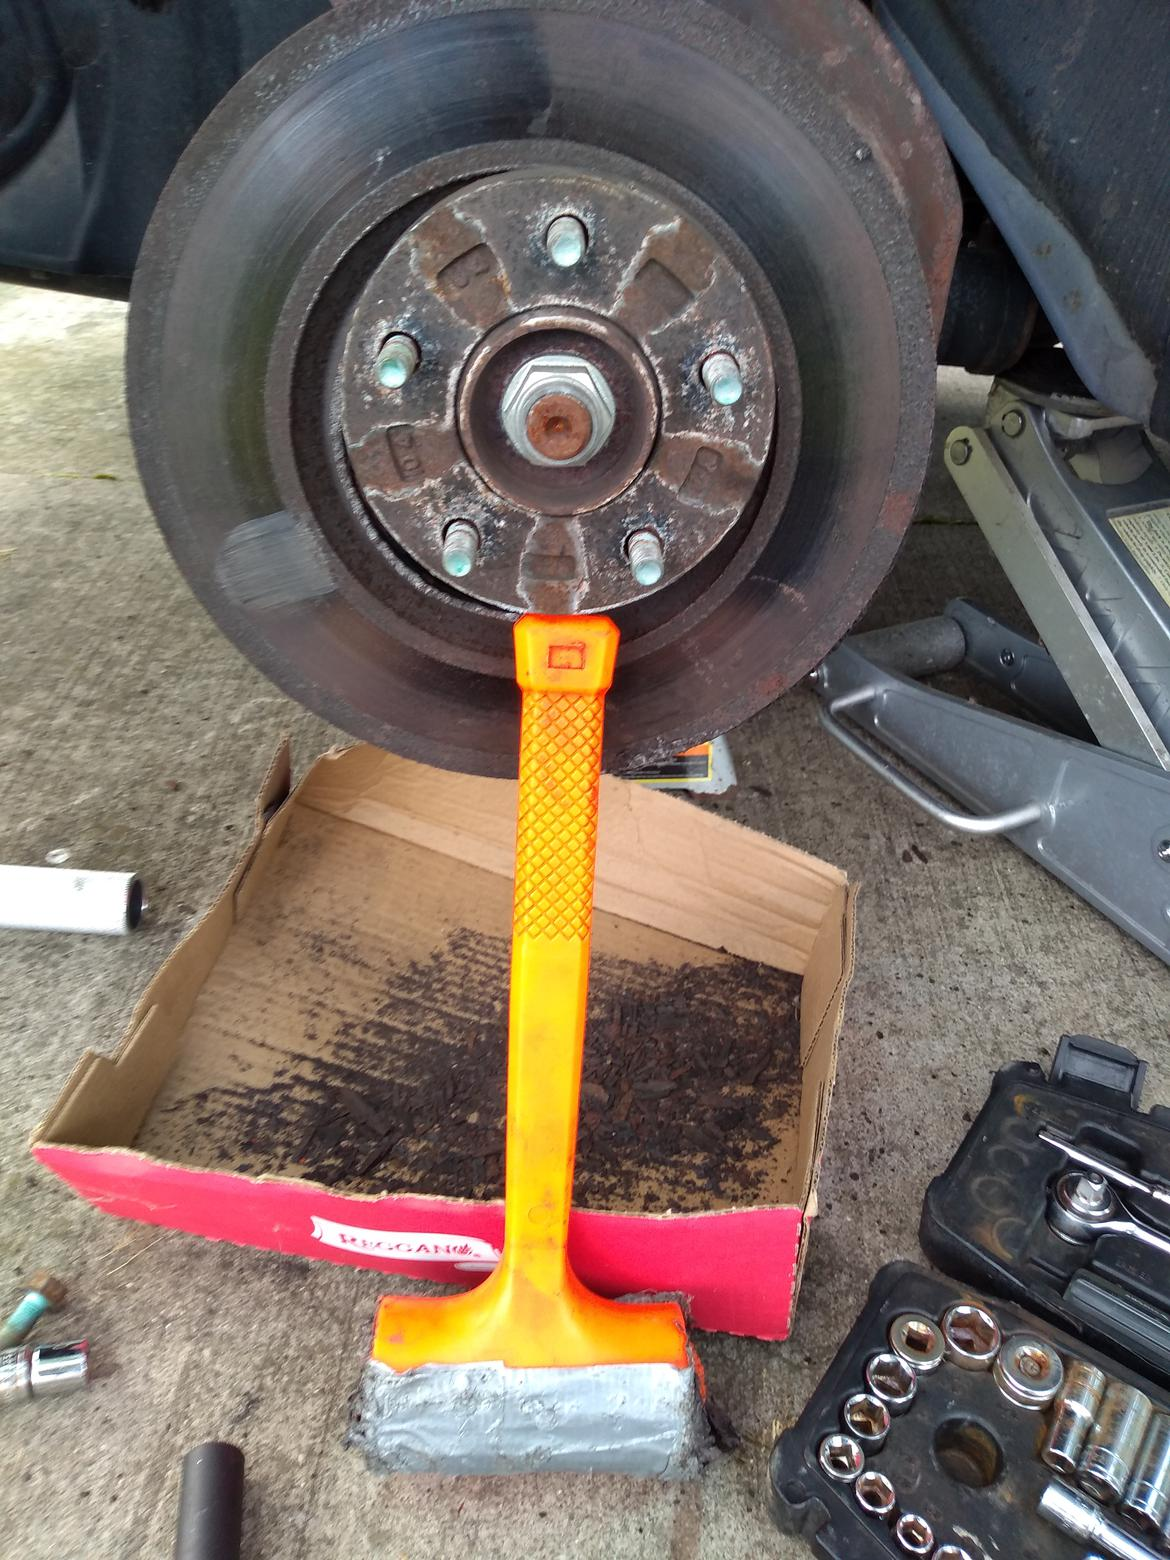 Brake Job In The Rust Belt Off Topic Discussion Forum It also helps control striking force with minimal rebound from the striking surface. brake job in the rust belt off topic